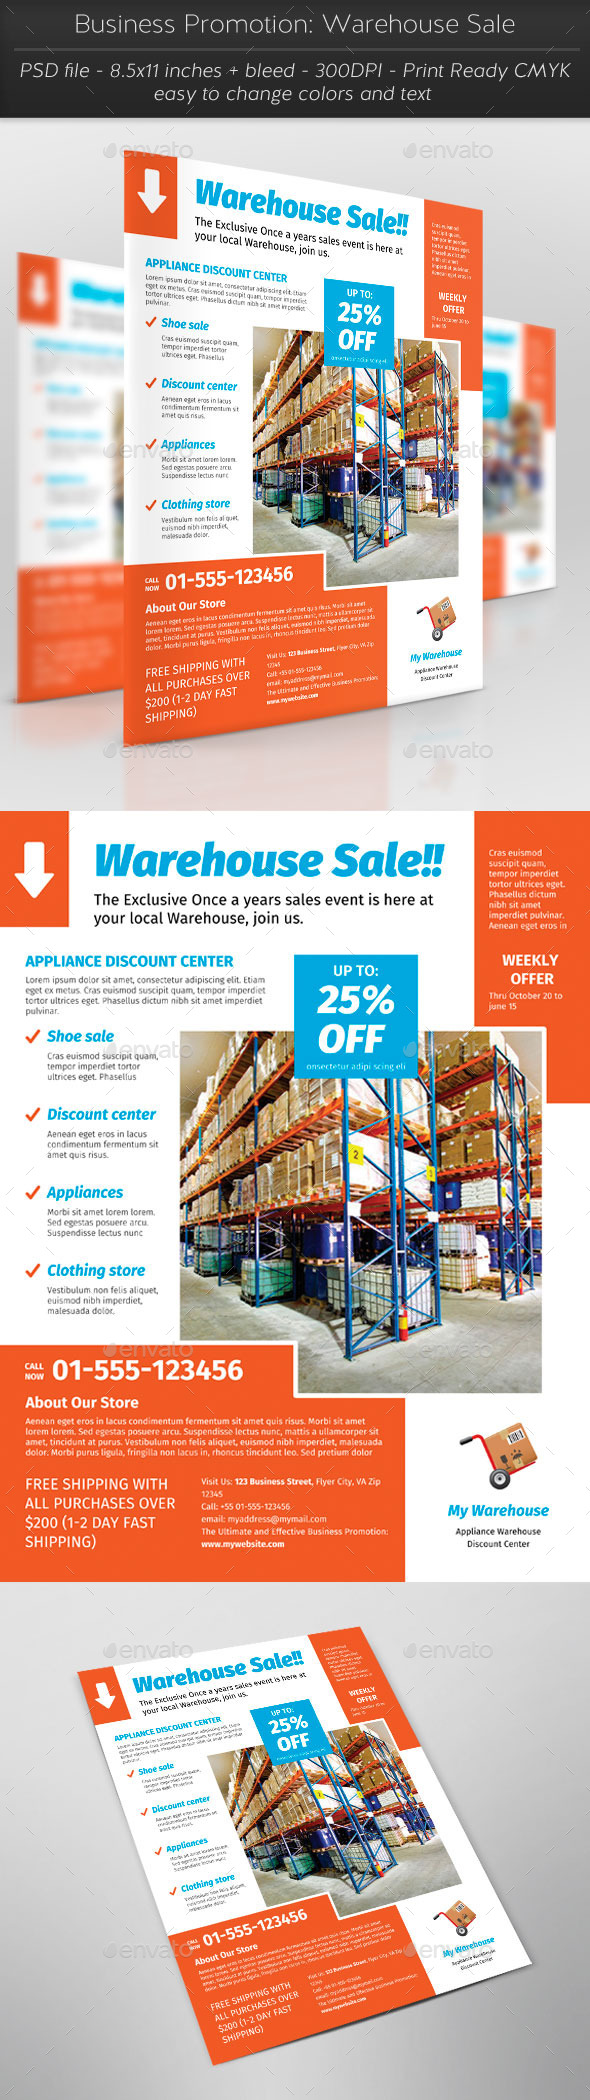 Business Promotion Warehouse Sale